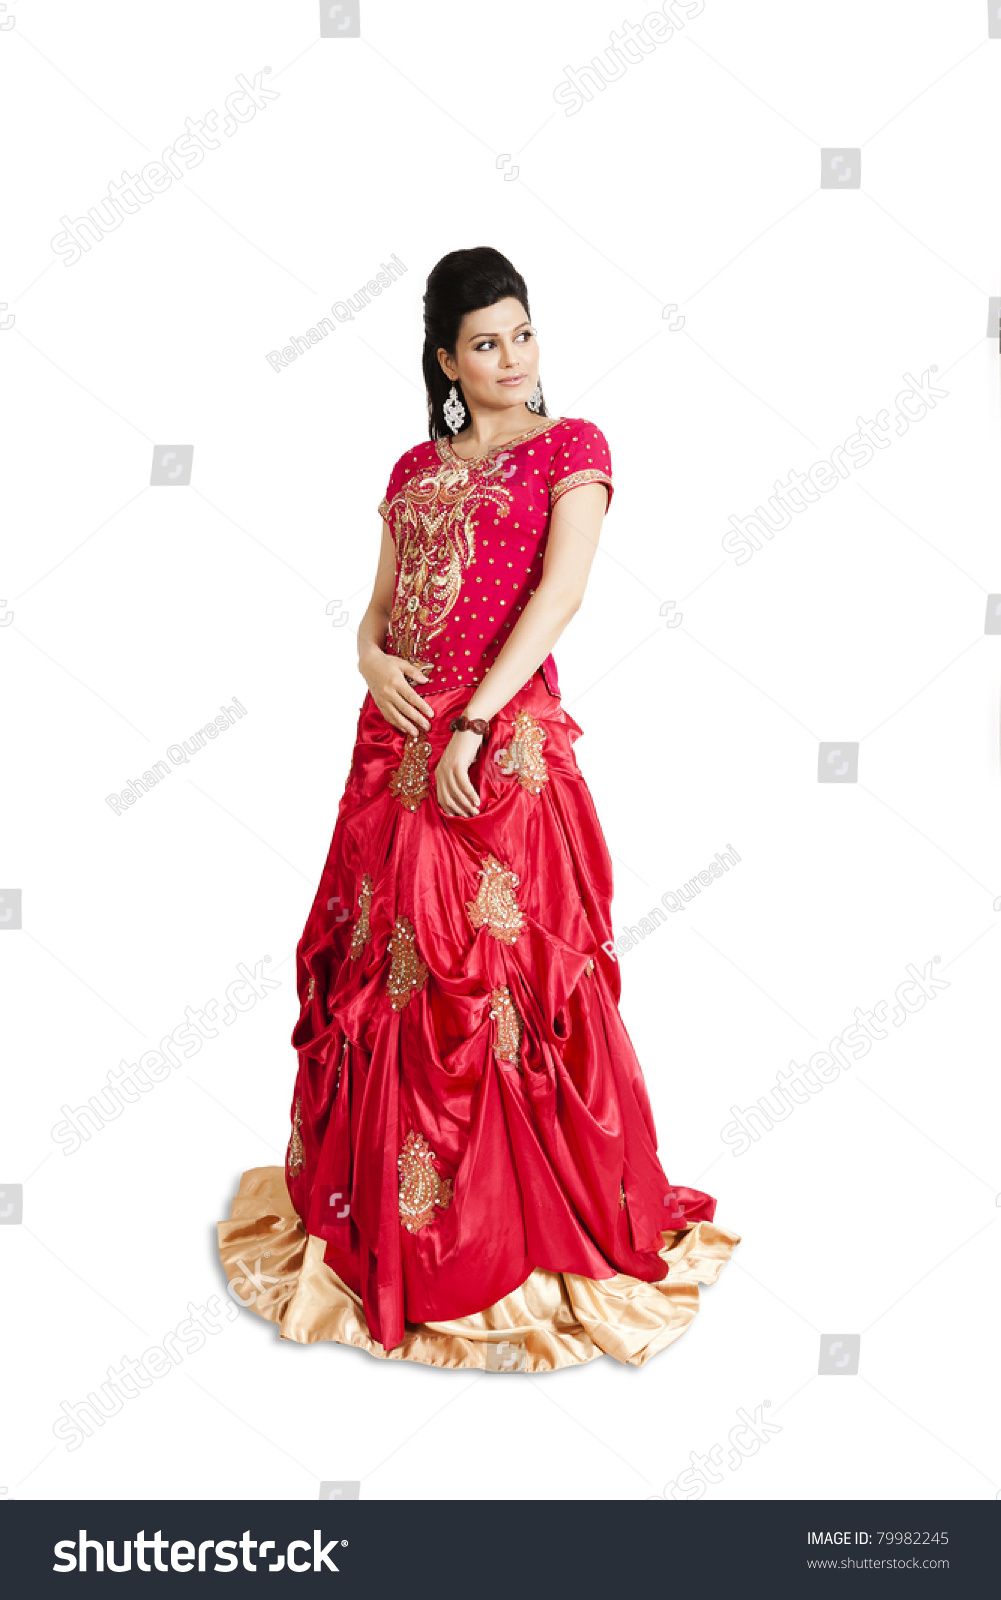 Indian Bride Wearing Red Bridal Gown Stock Photo (Edit Now ...